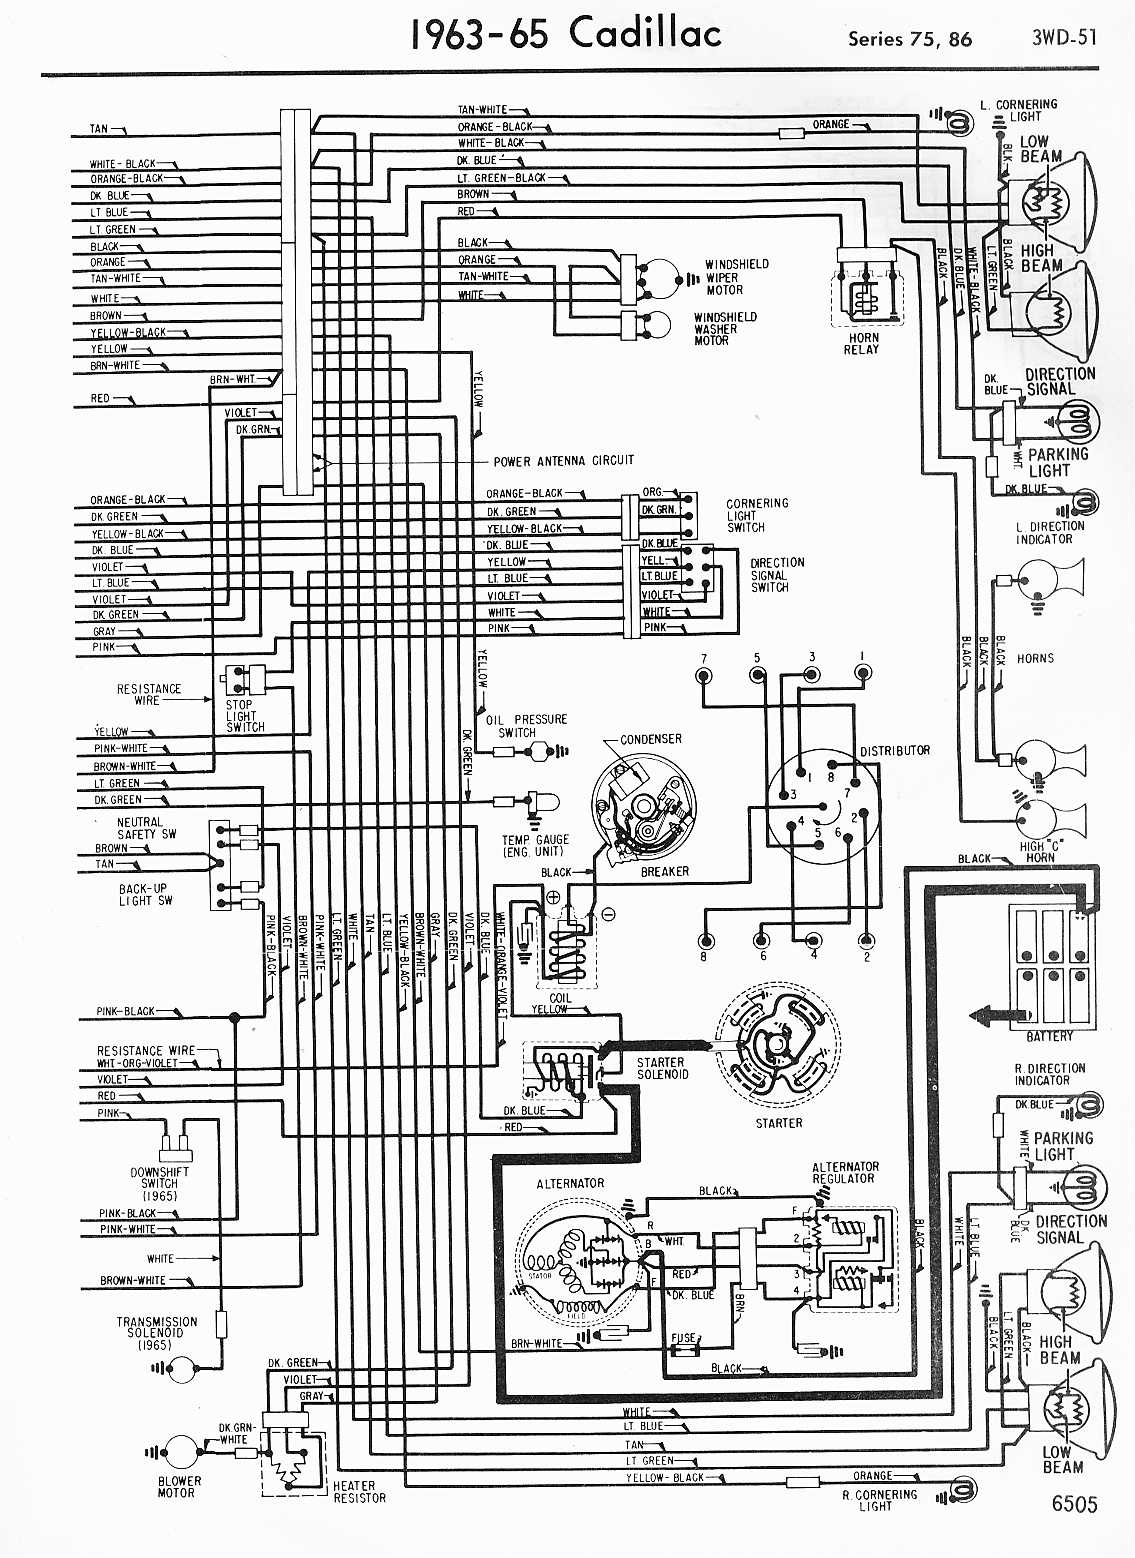 2005 Cadillac Escalade Headlight Wiring Diagram Books Of Fuse Box 75 Radio Schematics Rh Thyl Co Uk